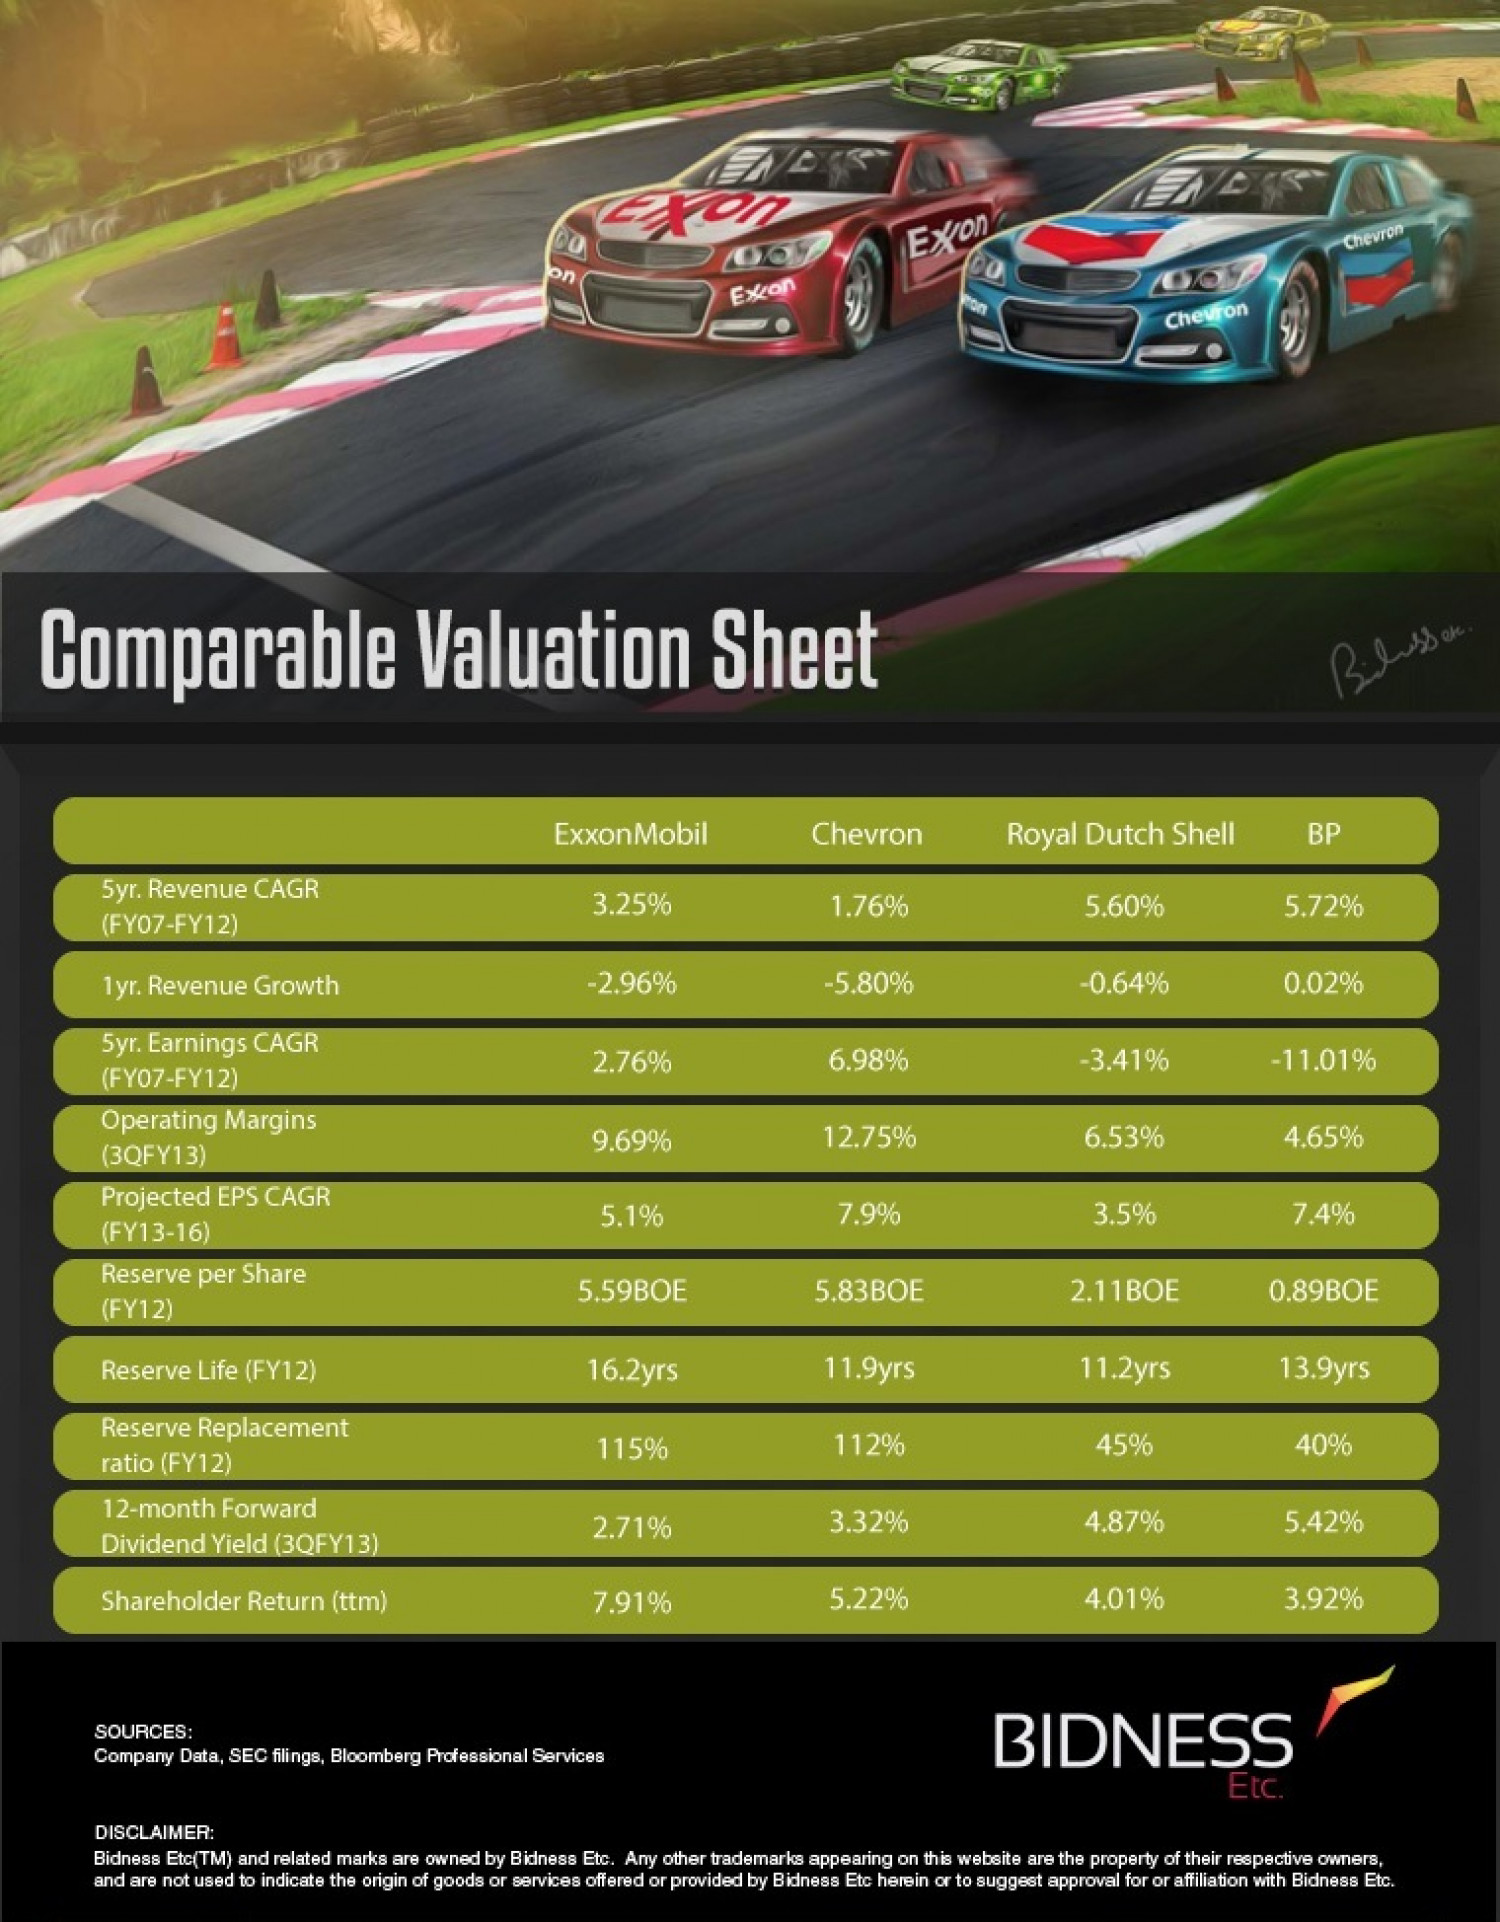 Exxon Mobil (XOM) Valuation Sheet Infographic